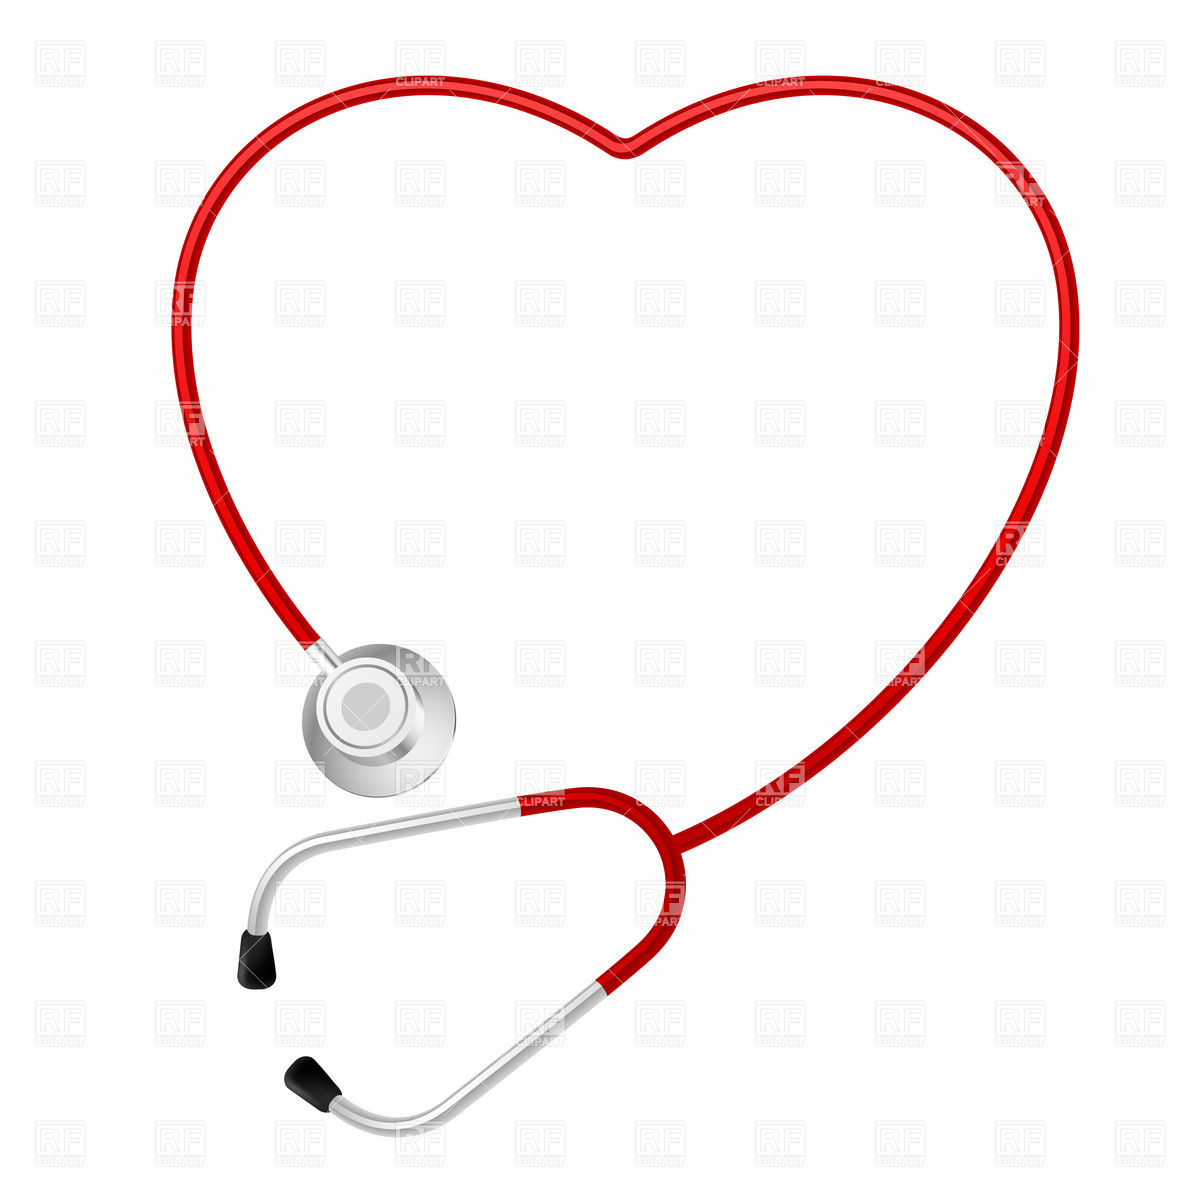 Heart Shaped Stethoscope 8412 Healthcare Medical Download Royalty